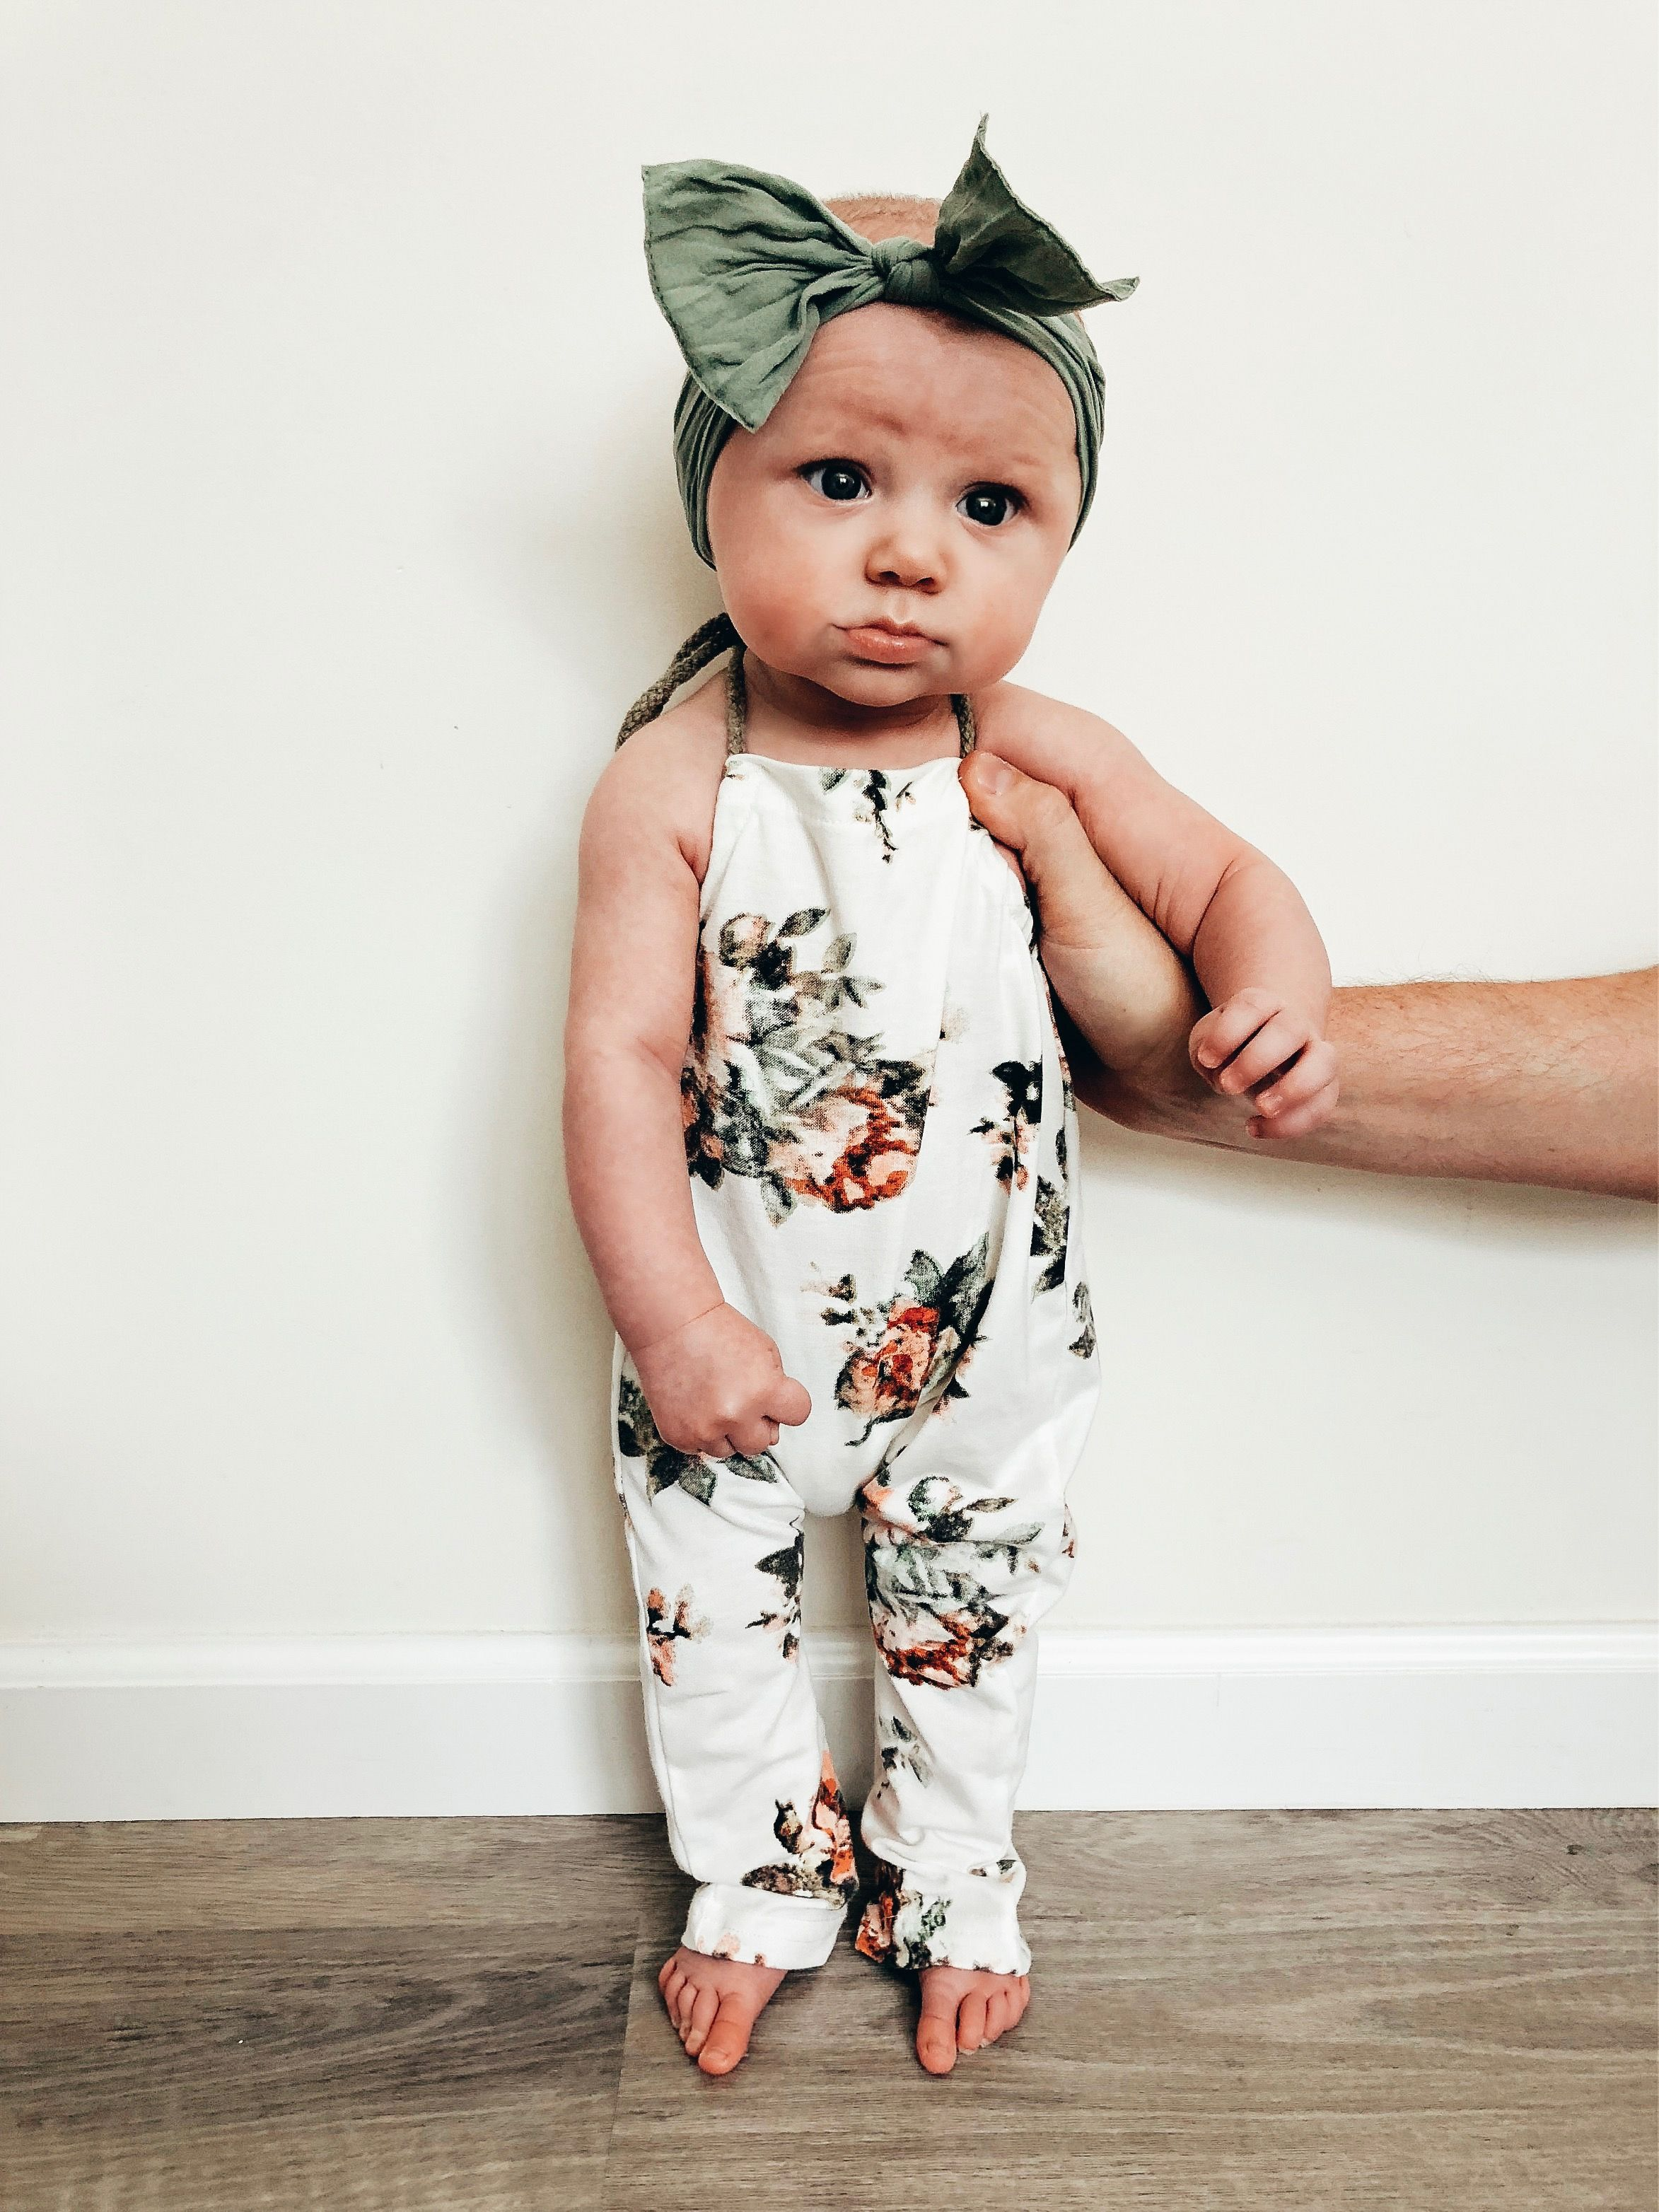 New ♡ Unicorn ♡outfit Jumpsuit Romper Baby Girl Age 3-6 Months Outfits & Sets